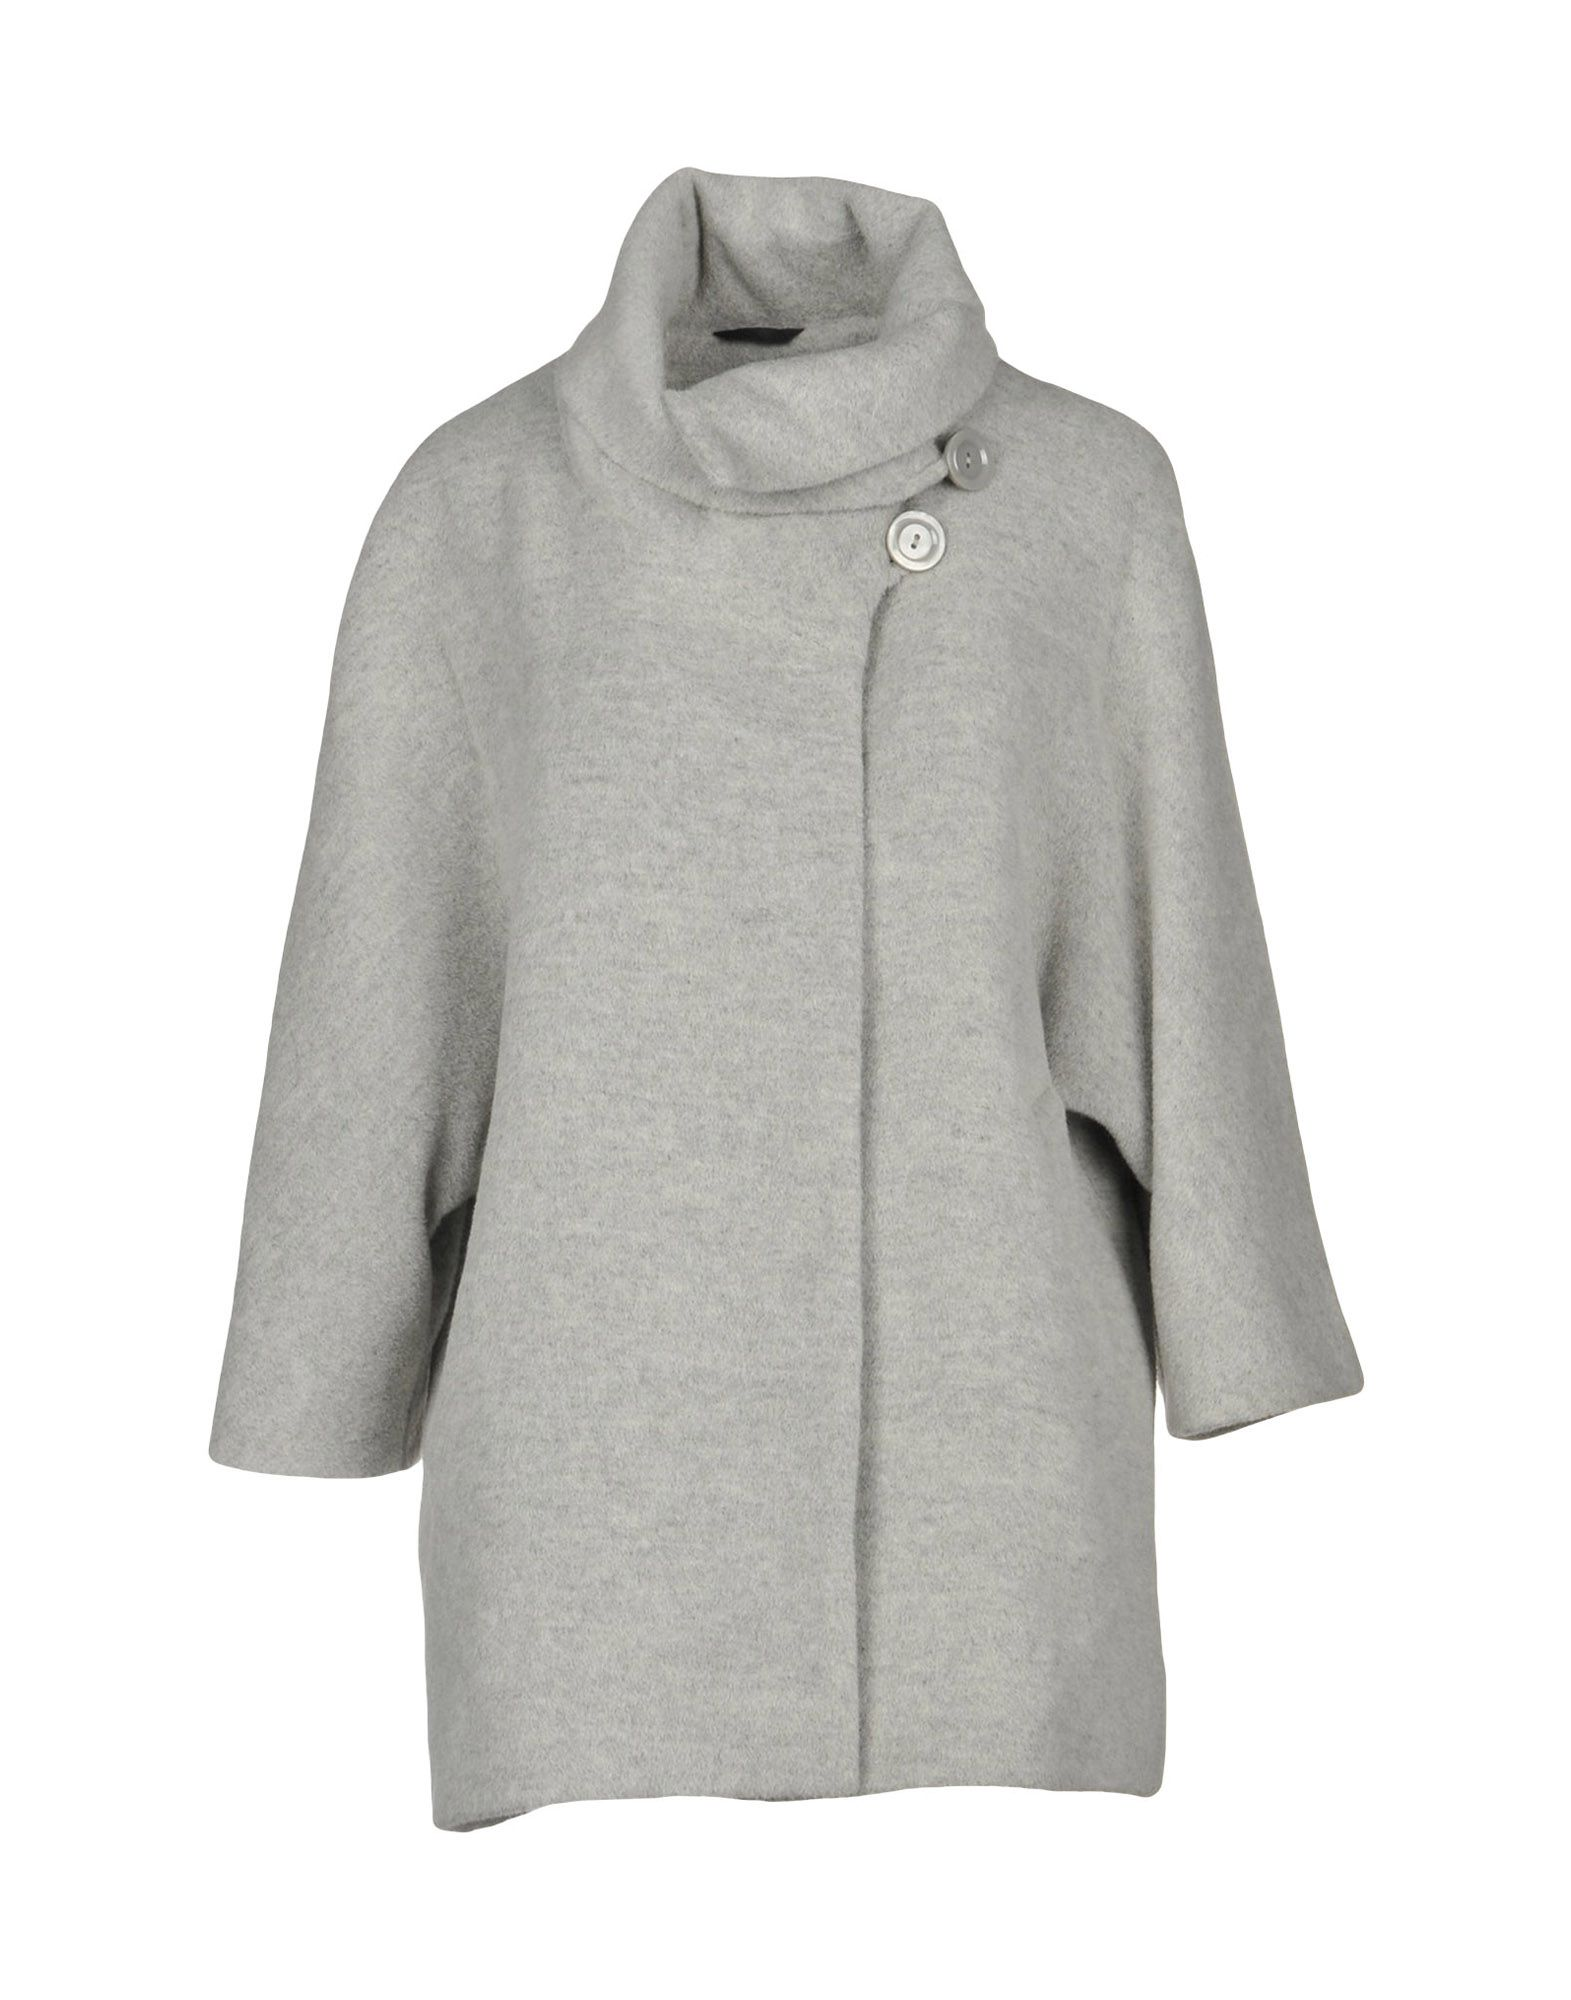 CINZIA ROCCA Coat in Light Grey